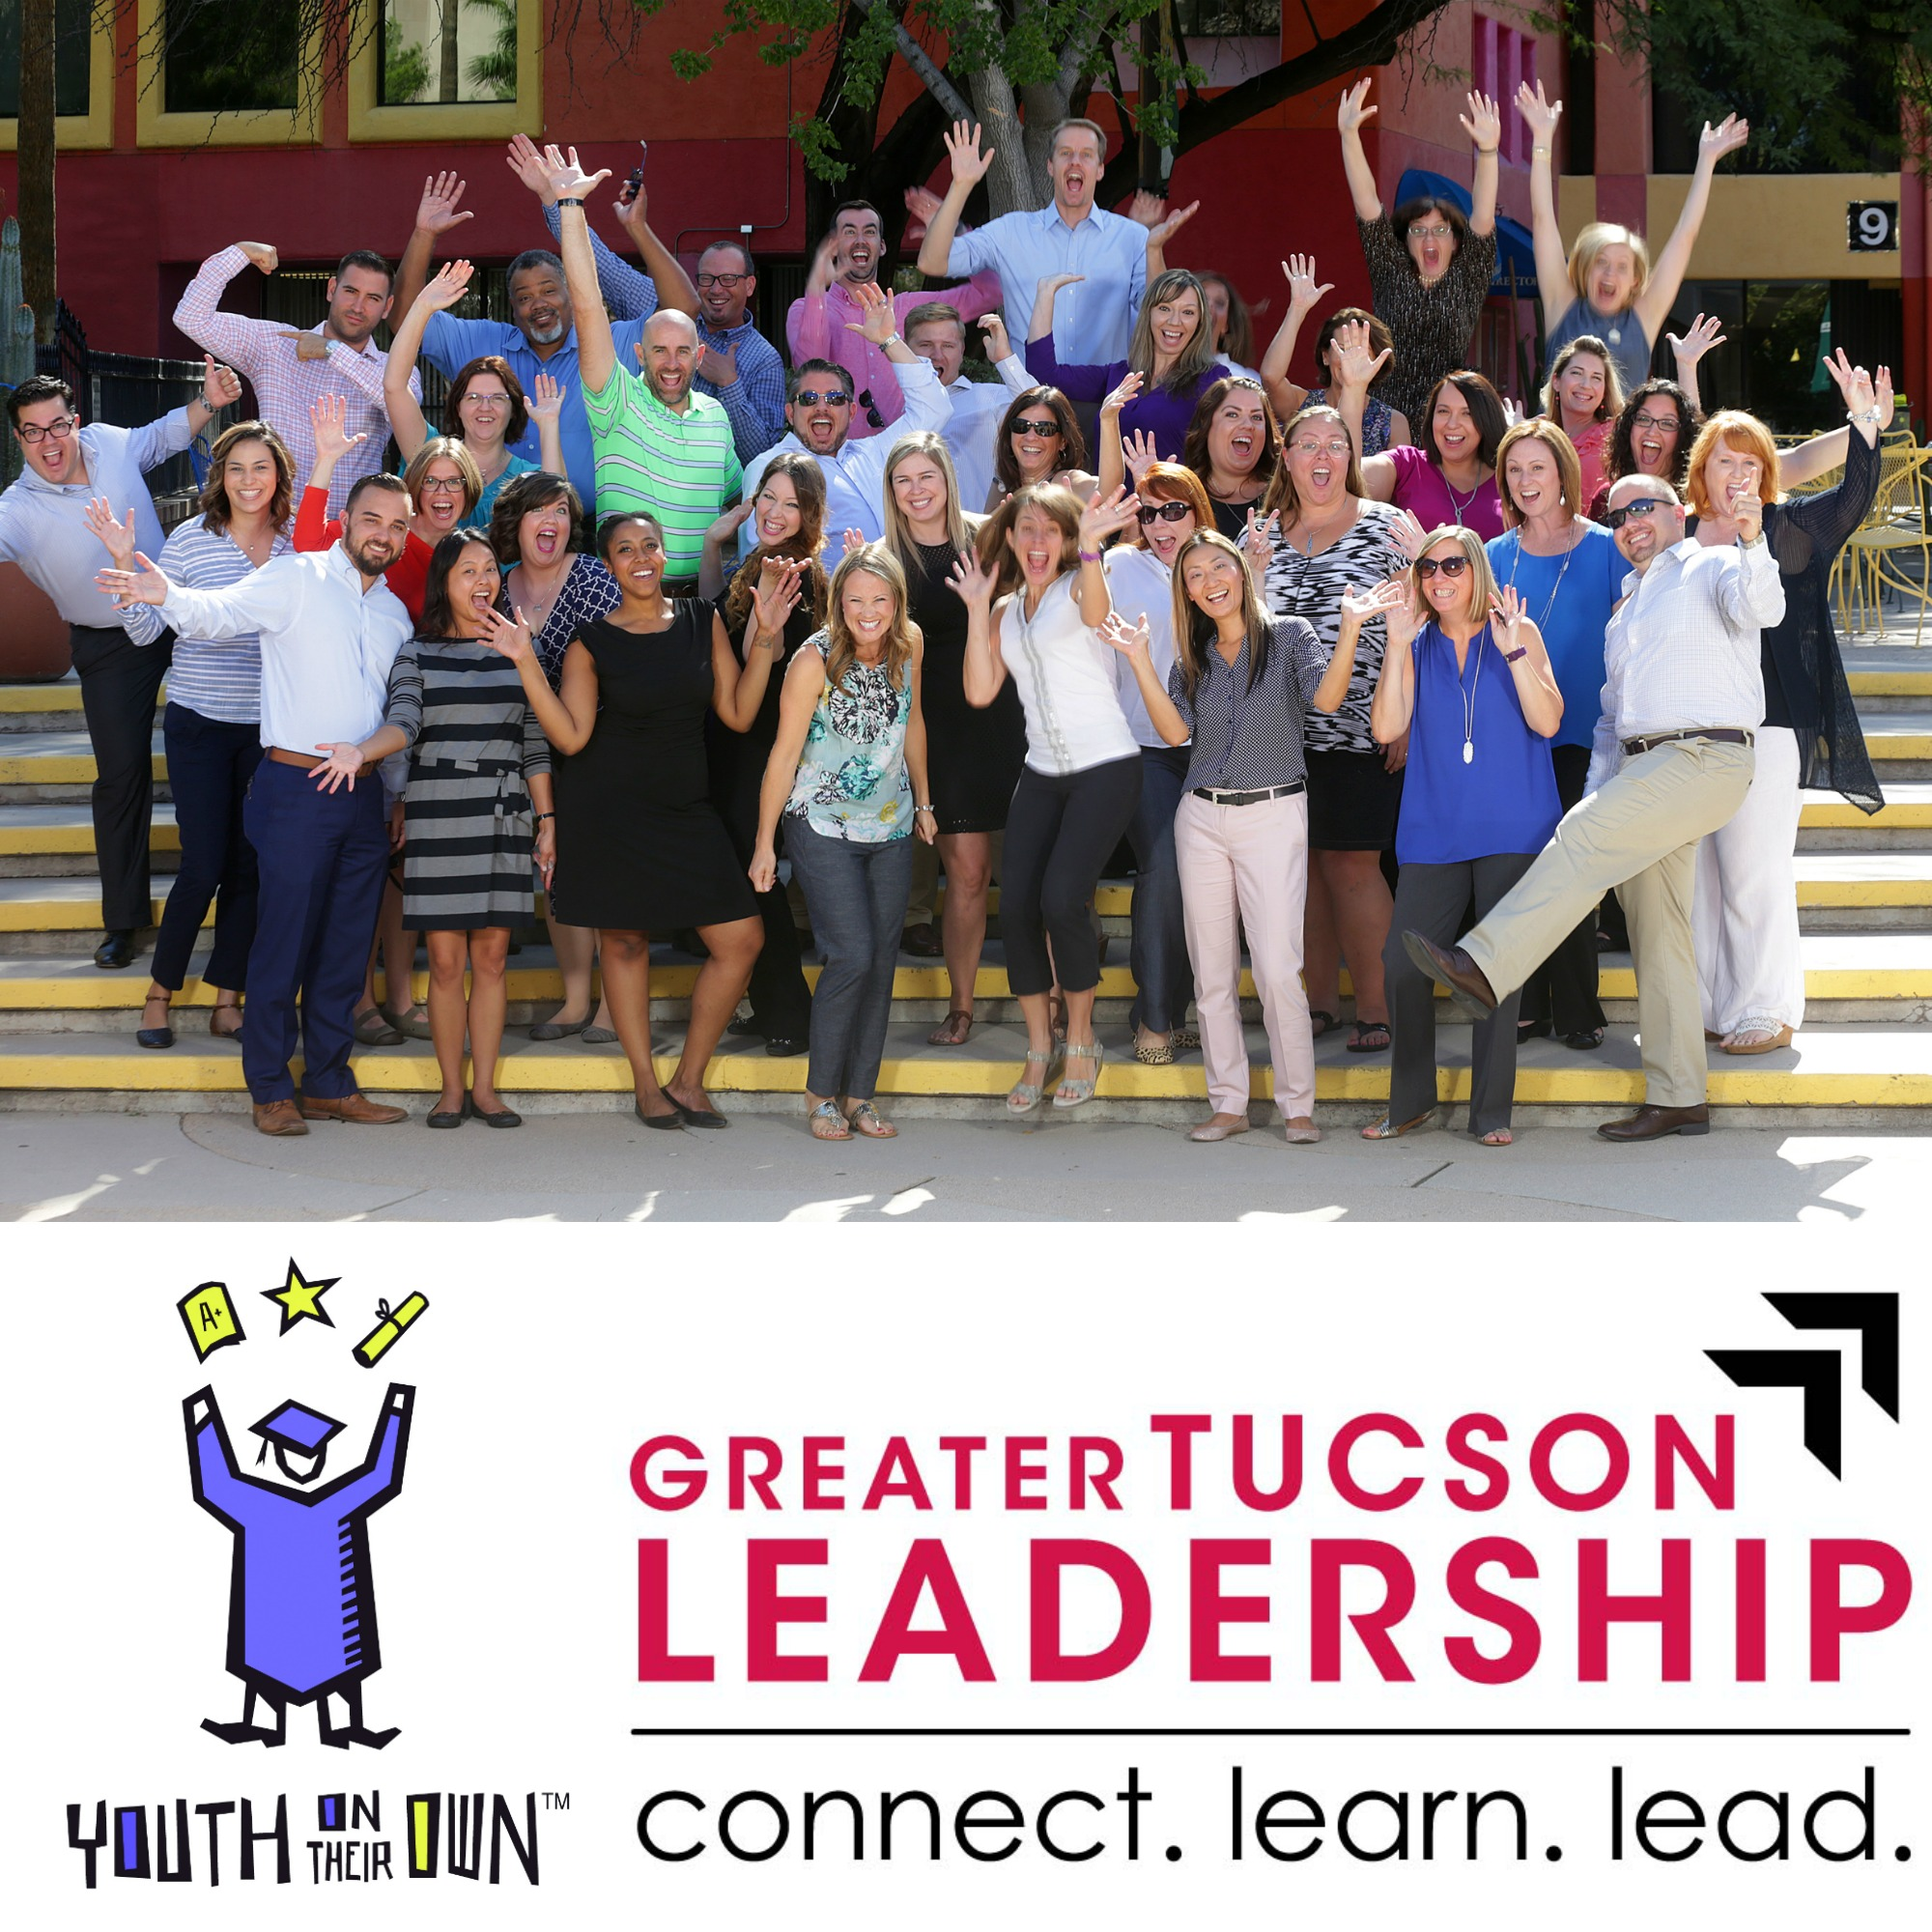 GREATER TUCSON LEADERSHIP INC's Photo